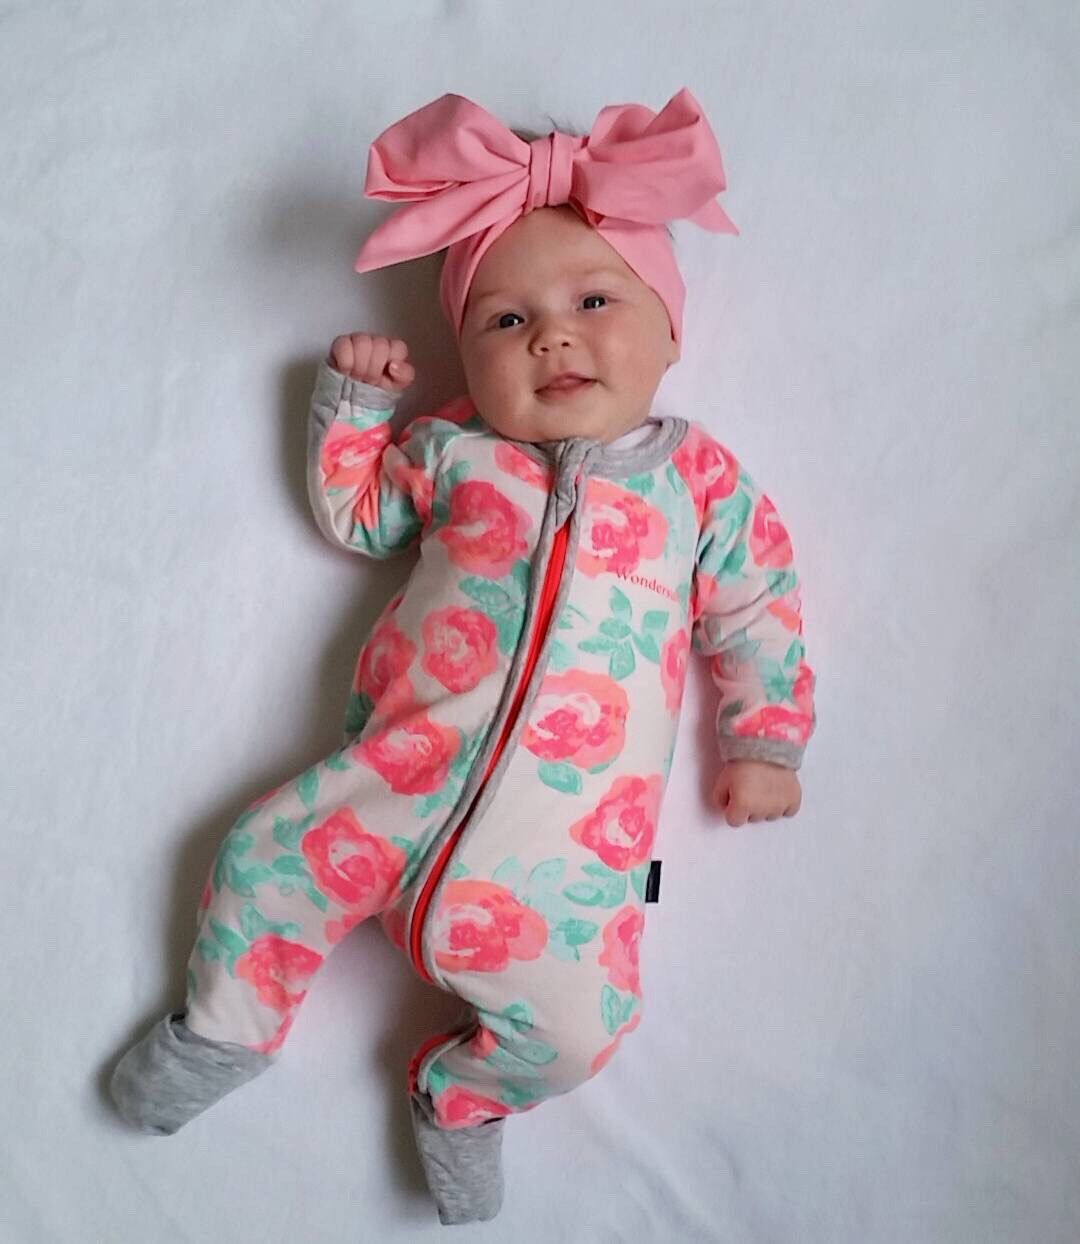 f0128e169 Newborn Baby Rose One Piece Outfit Long Sleeve Sleeper